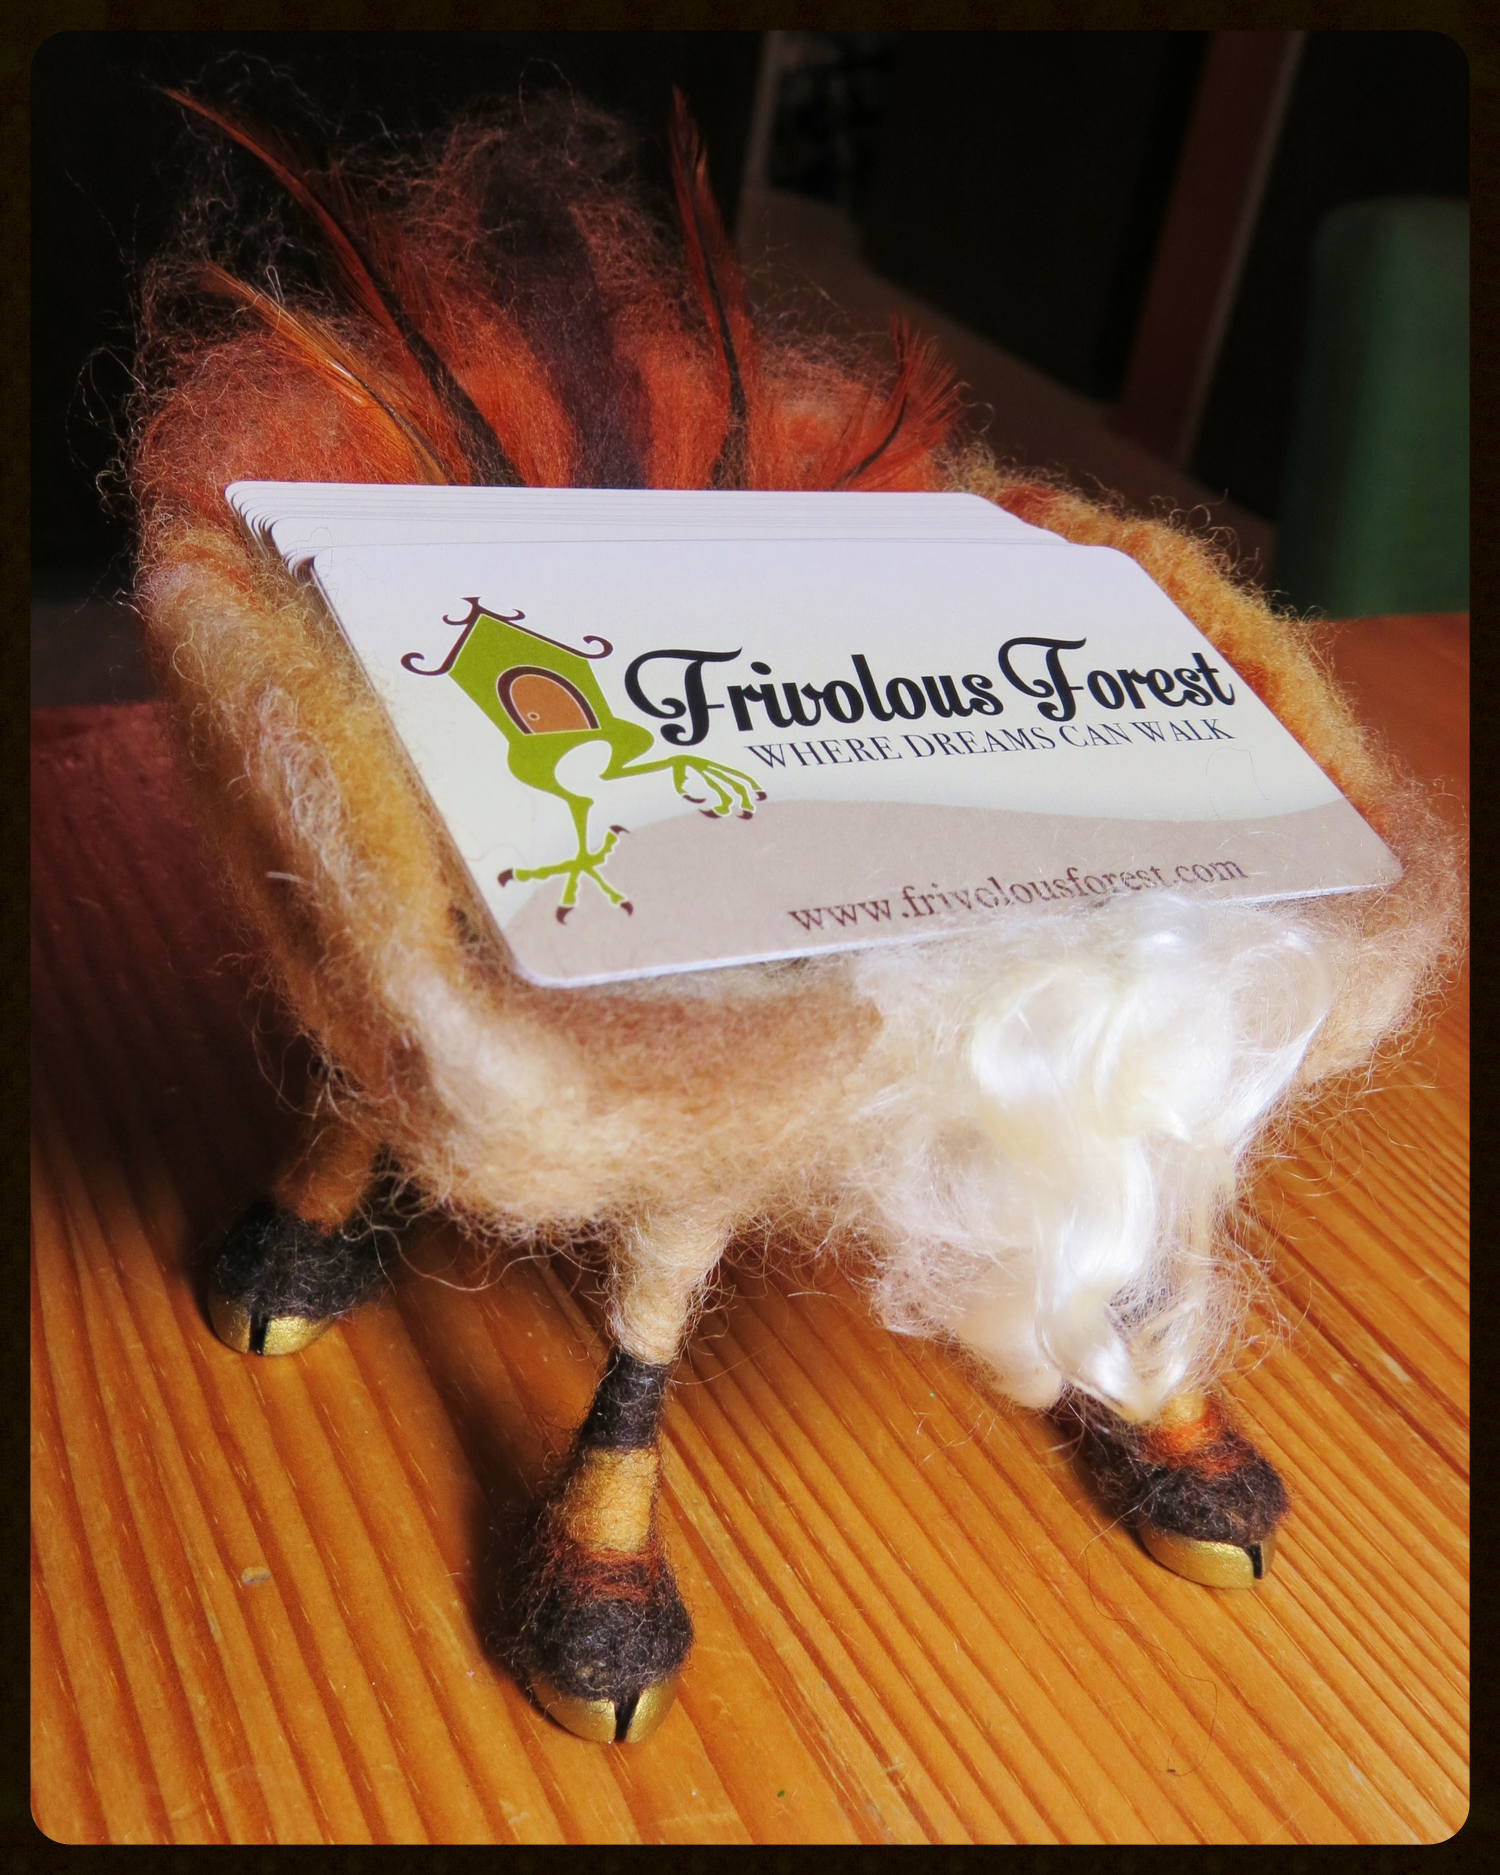 This creature with hooves and feathers has obligingly agreed to carry my cards for me.